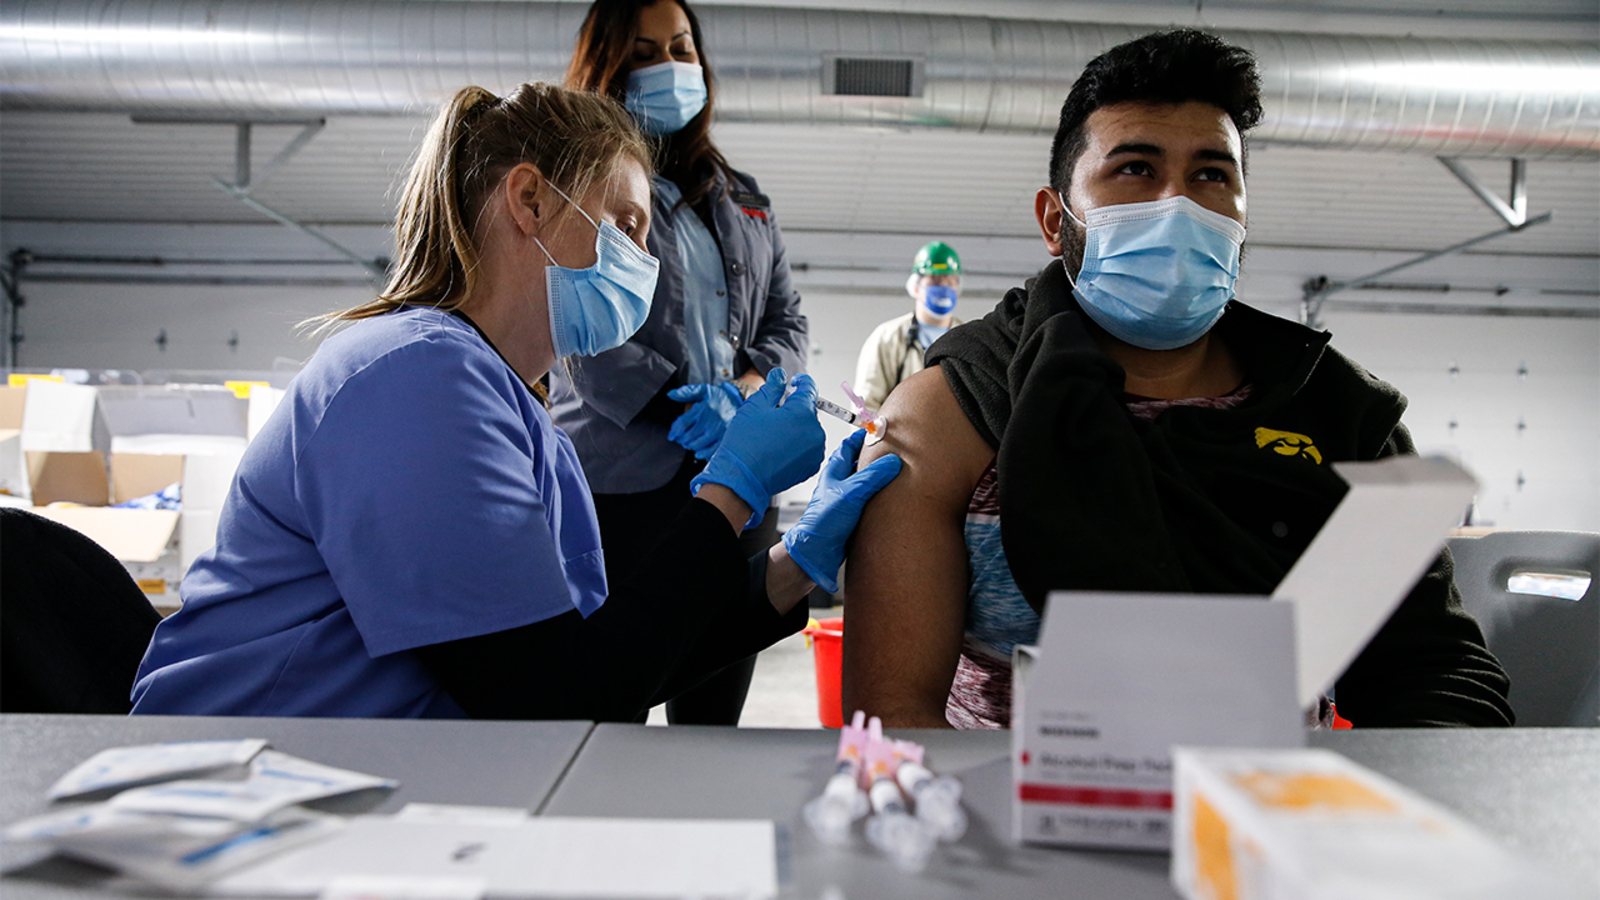 Vaccine 'line jumpers' emerge as Texans don't have to prove eligibility - KTRK-TV